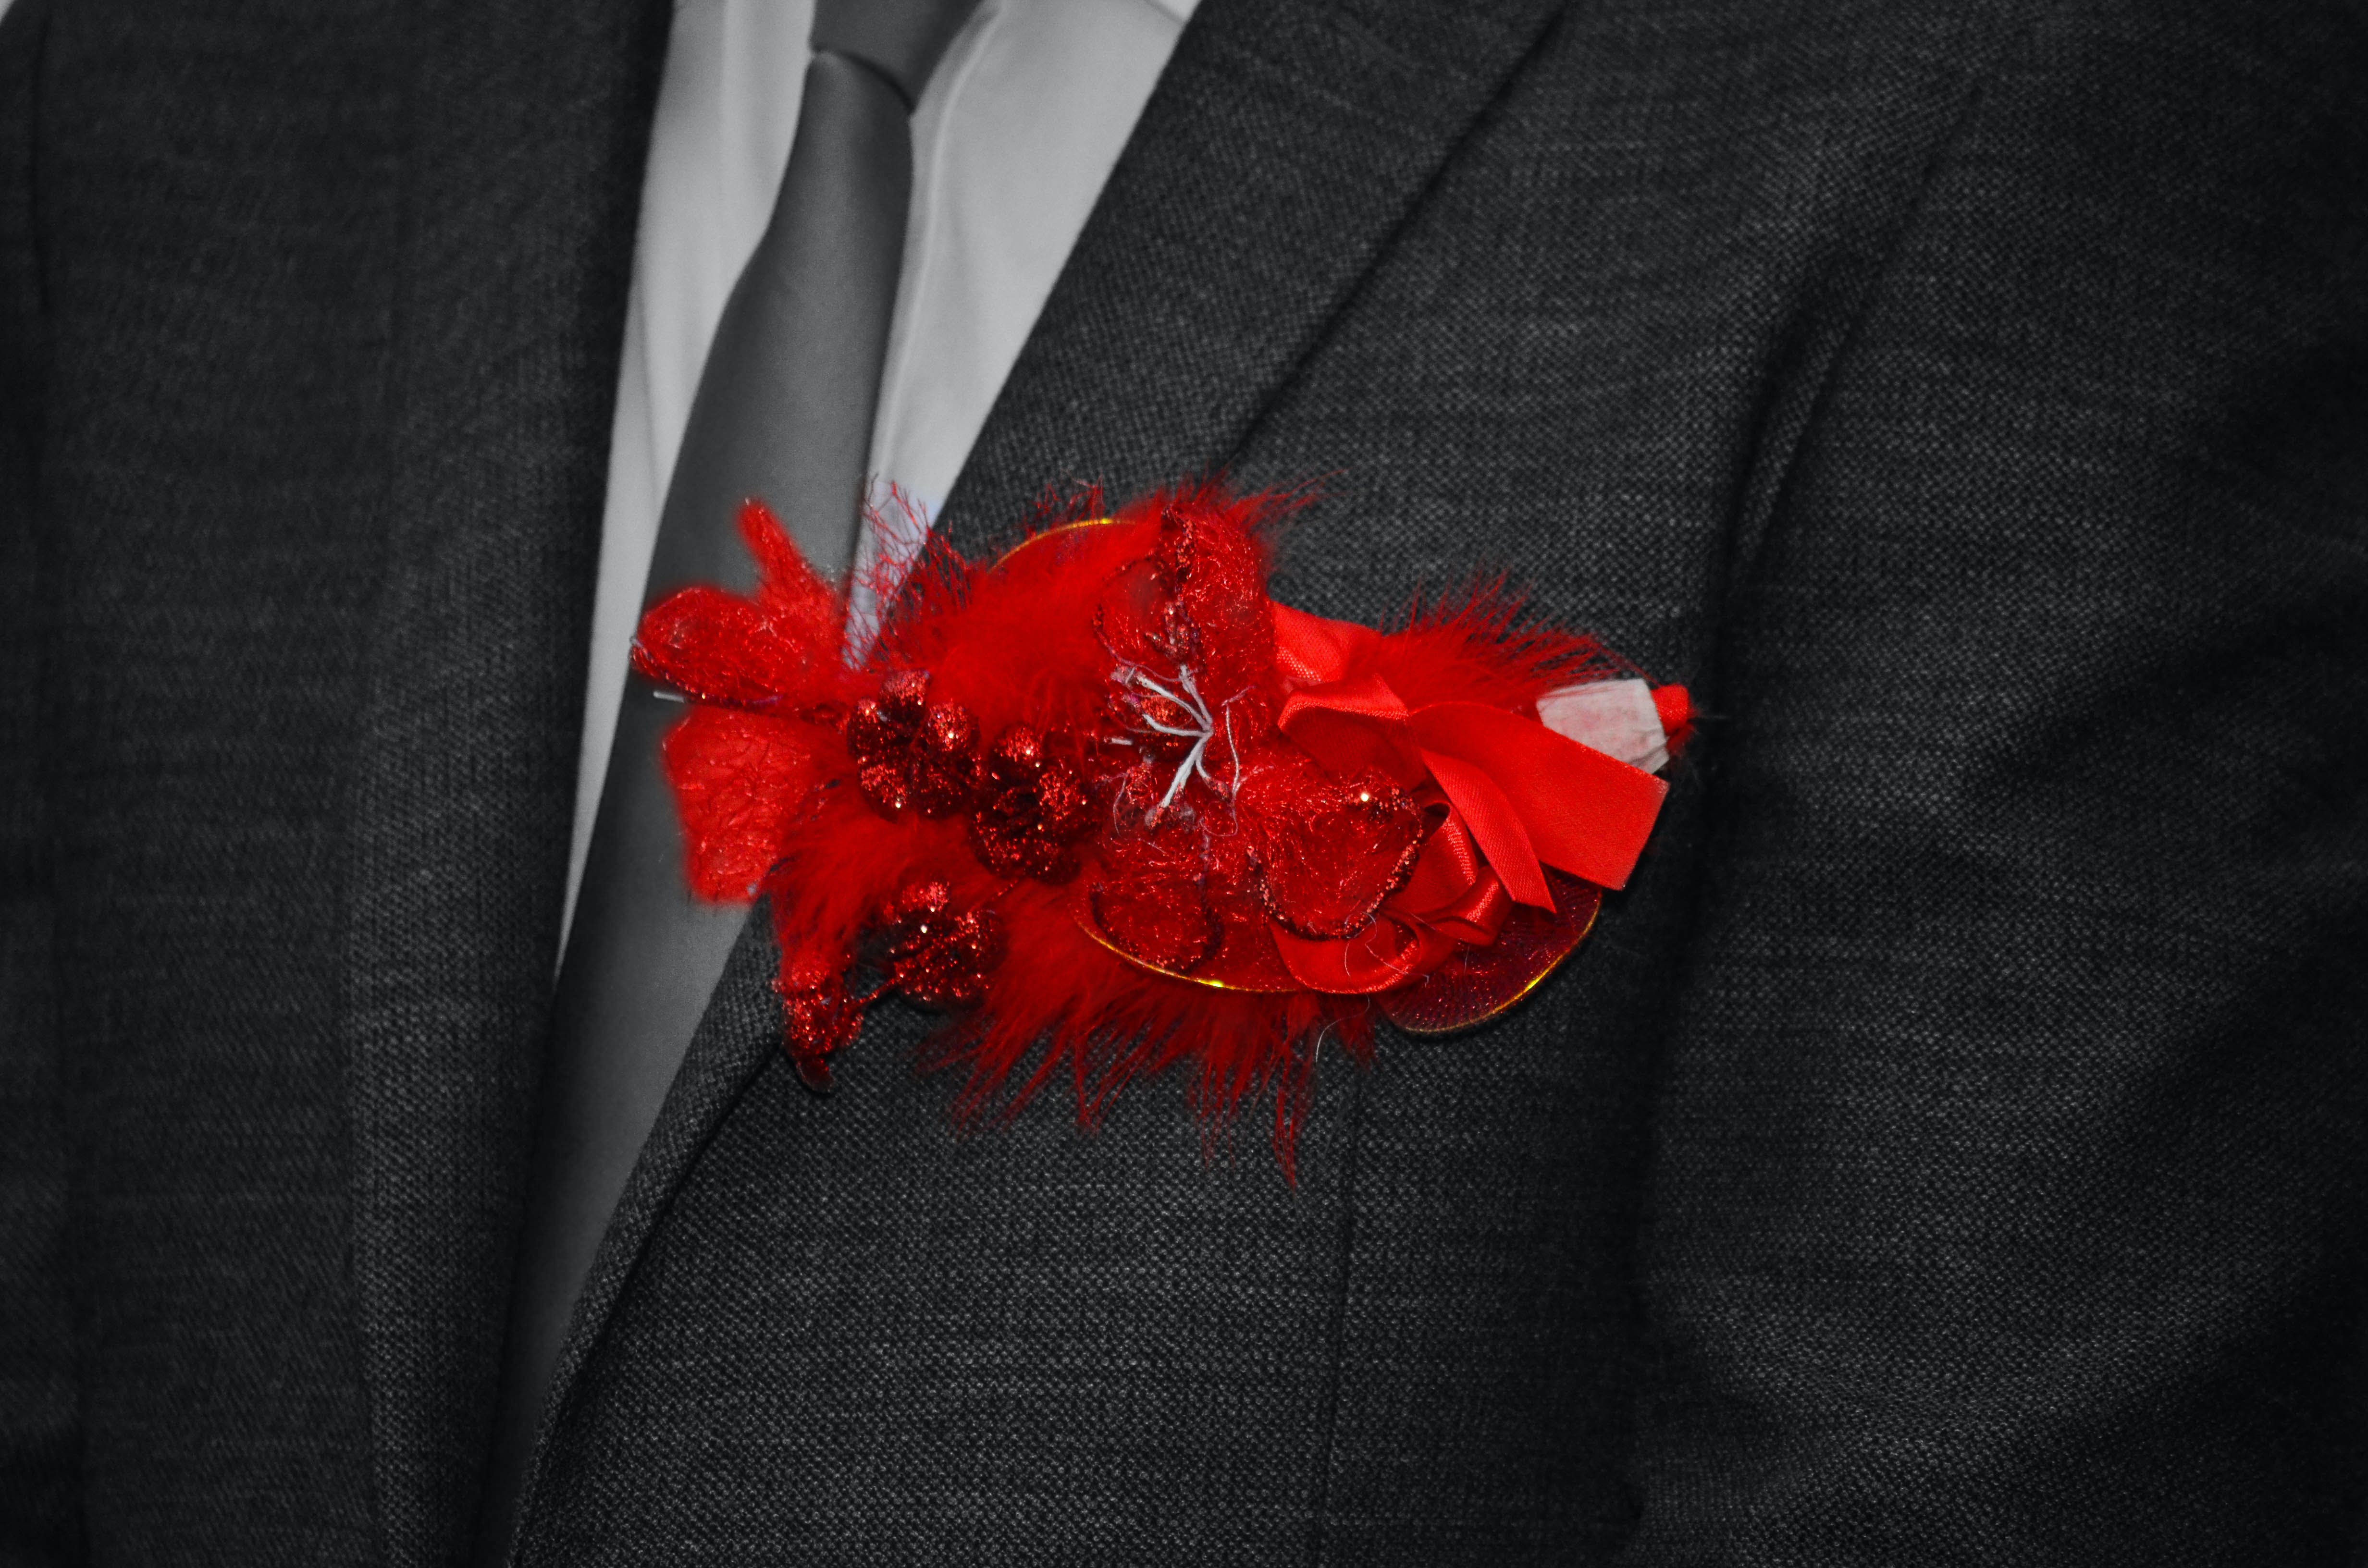 Free stock photo of black and white, designer suit, flower, man